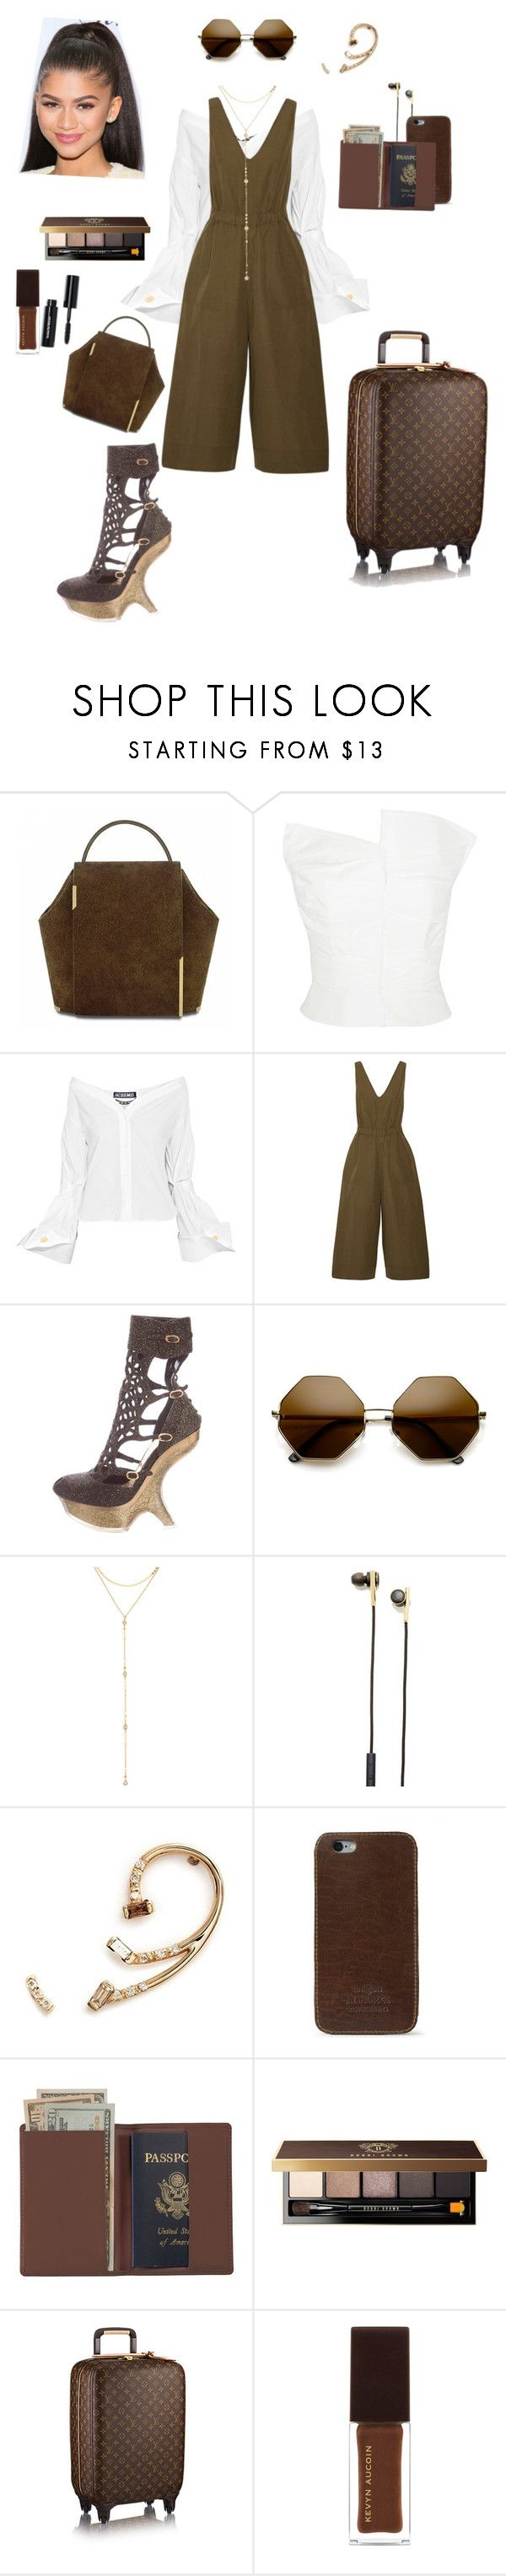 """Private Jet Flights 🛩"" by aurora-cristaux ❤ liked on Polyvore featuring Carmen March, Jacquemus, Ulla Johnson, Alexander McQueen, ZeroUV, Fragments, Caeden, Xiao Wang, J.W. Hulme Co. and Royce Leather"